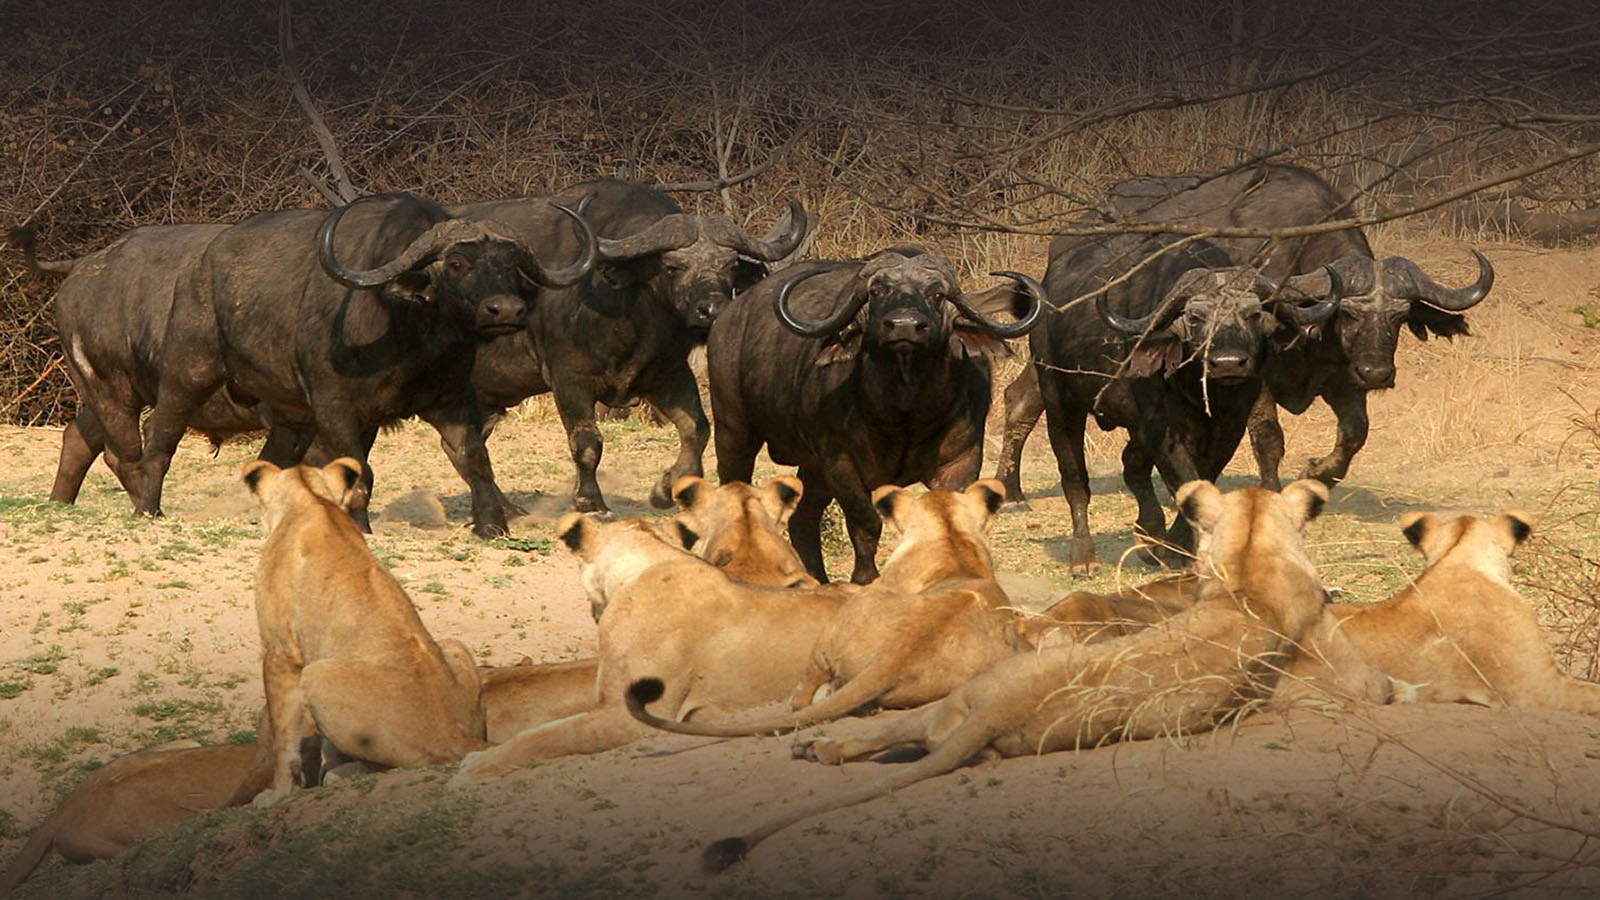 kaingo-camp-luxury-lodge-zambia-in-style-tours-safari-packages-lodges-travel-south-luangwa-national-park-water-hole-lions